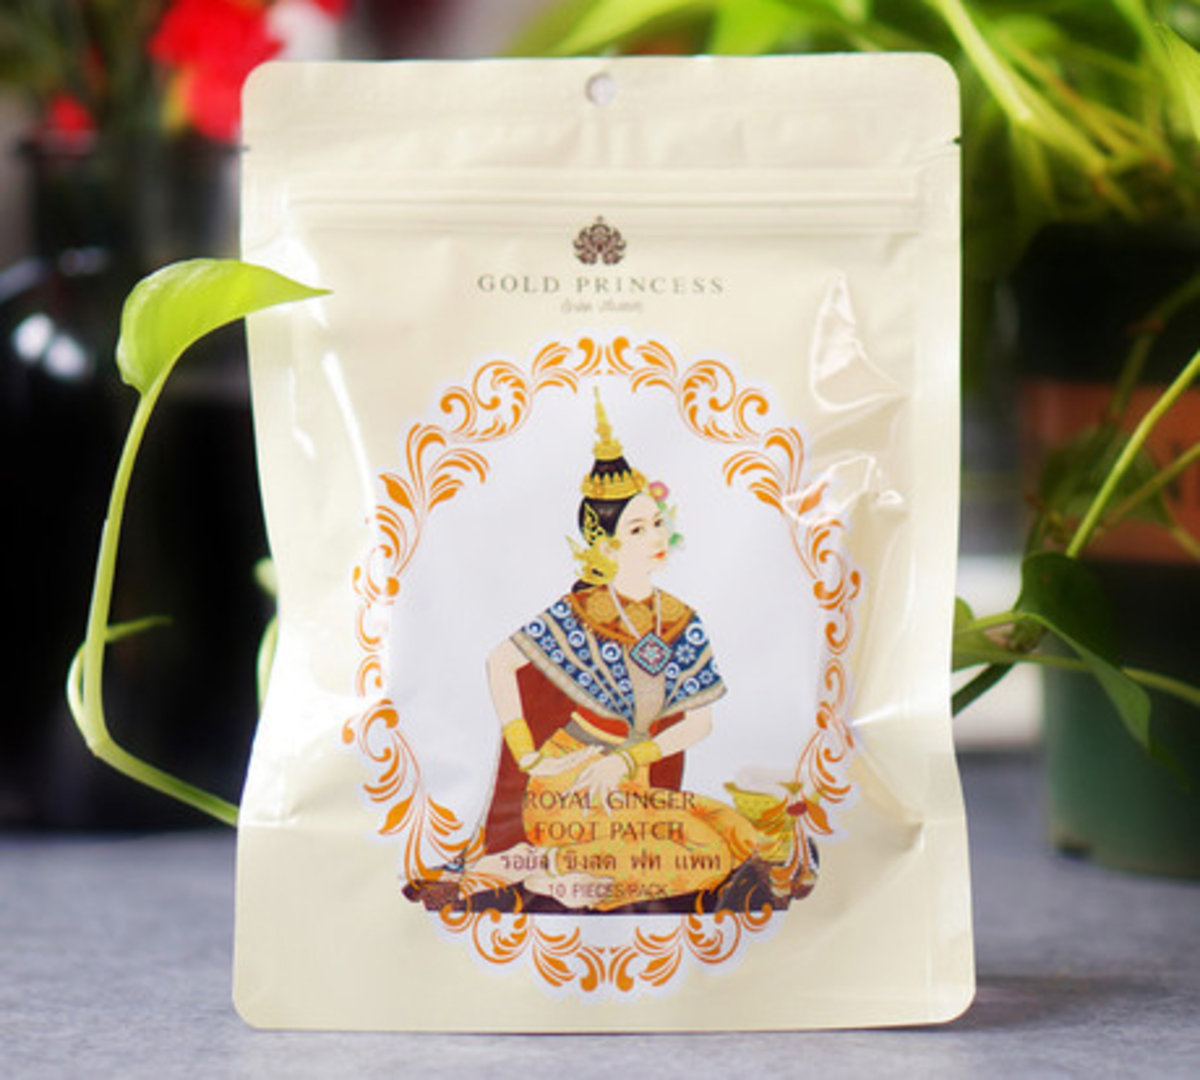 Royal Detoxification Foot Patch (Ginger)